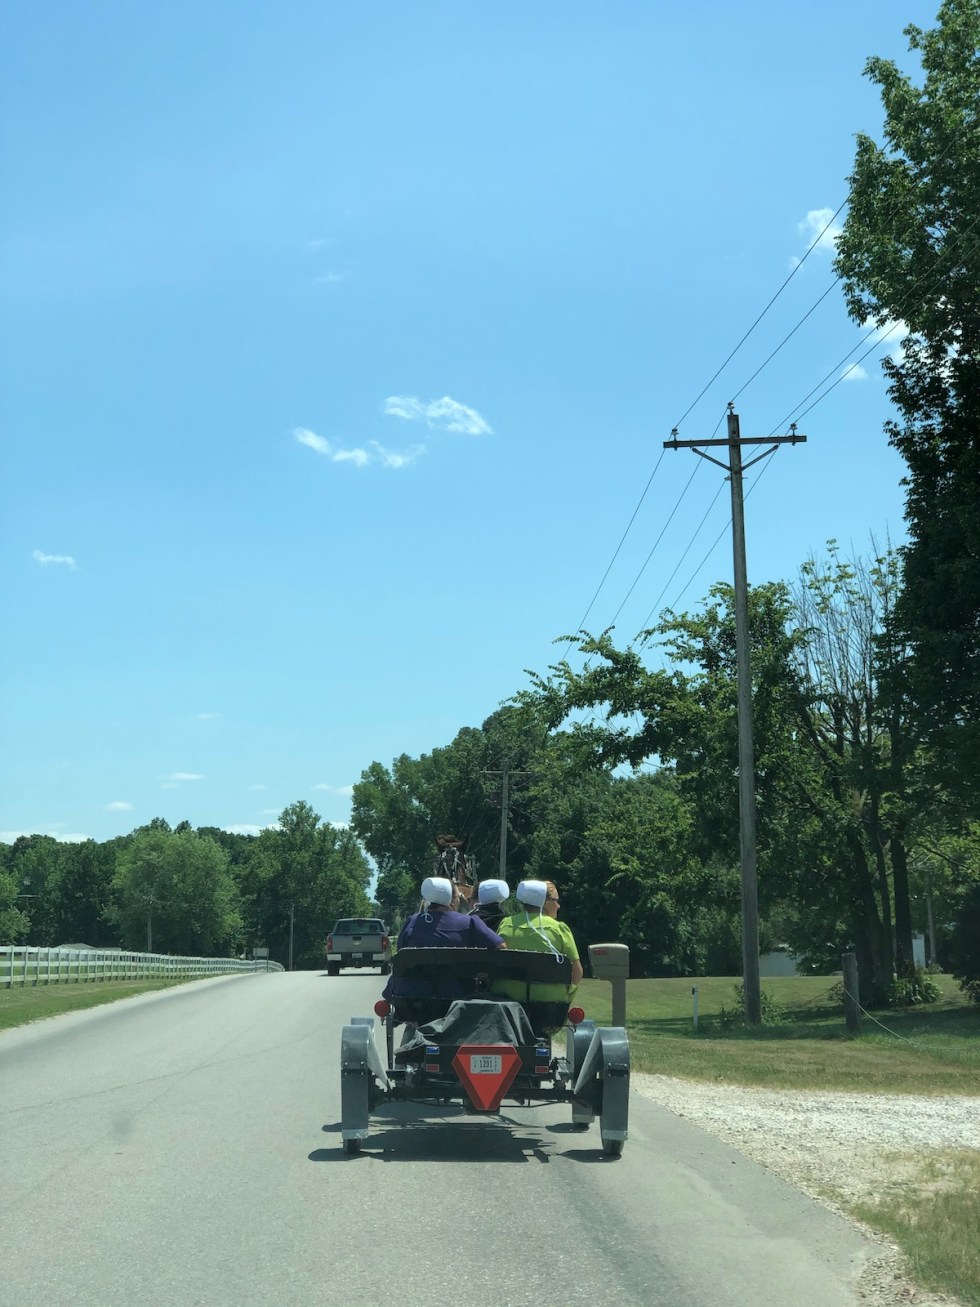 Amish horse-drawn buggy with female passengers